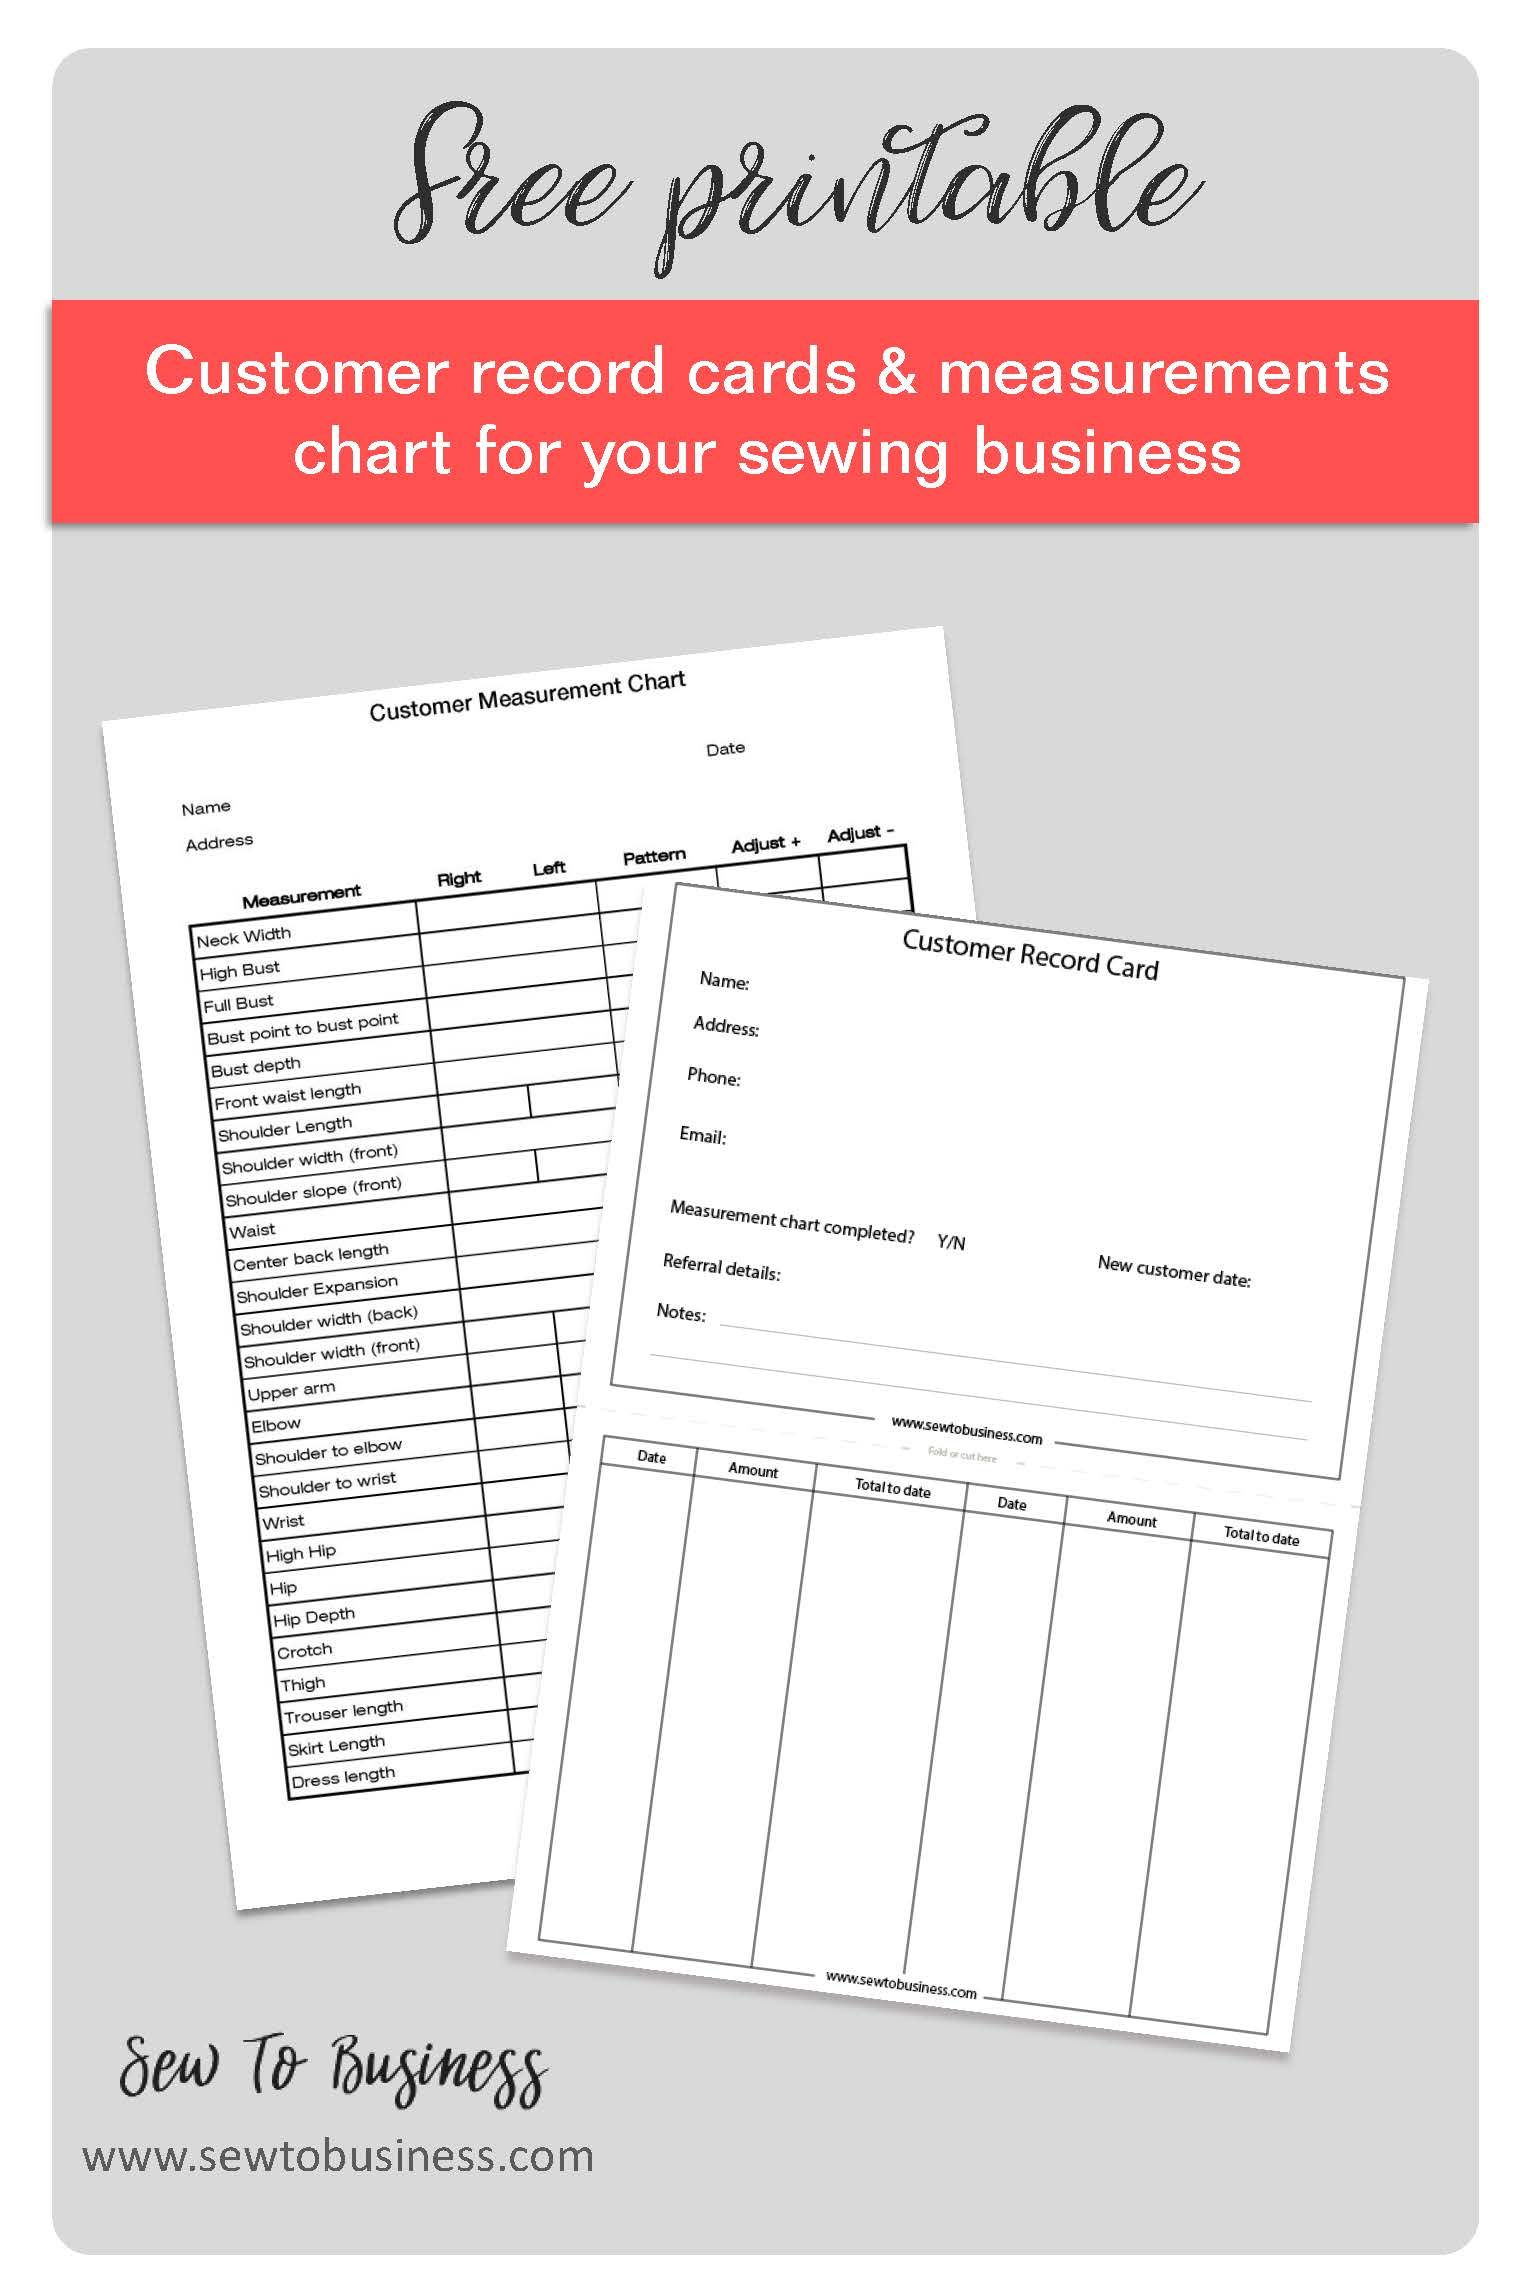 Free printable customer record cards and measurements